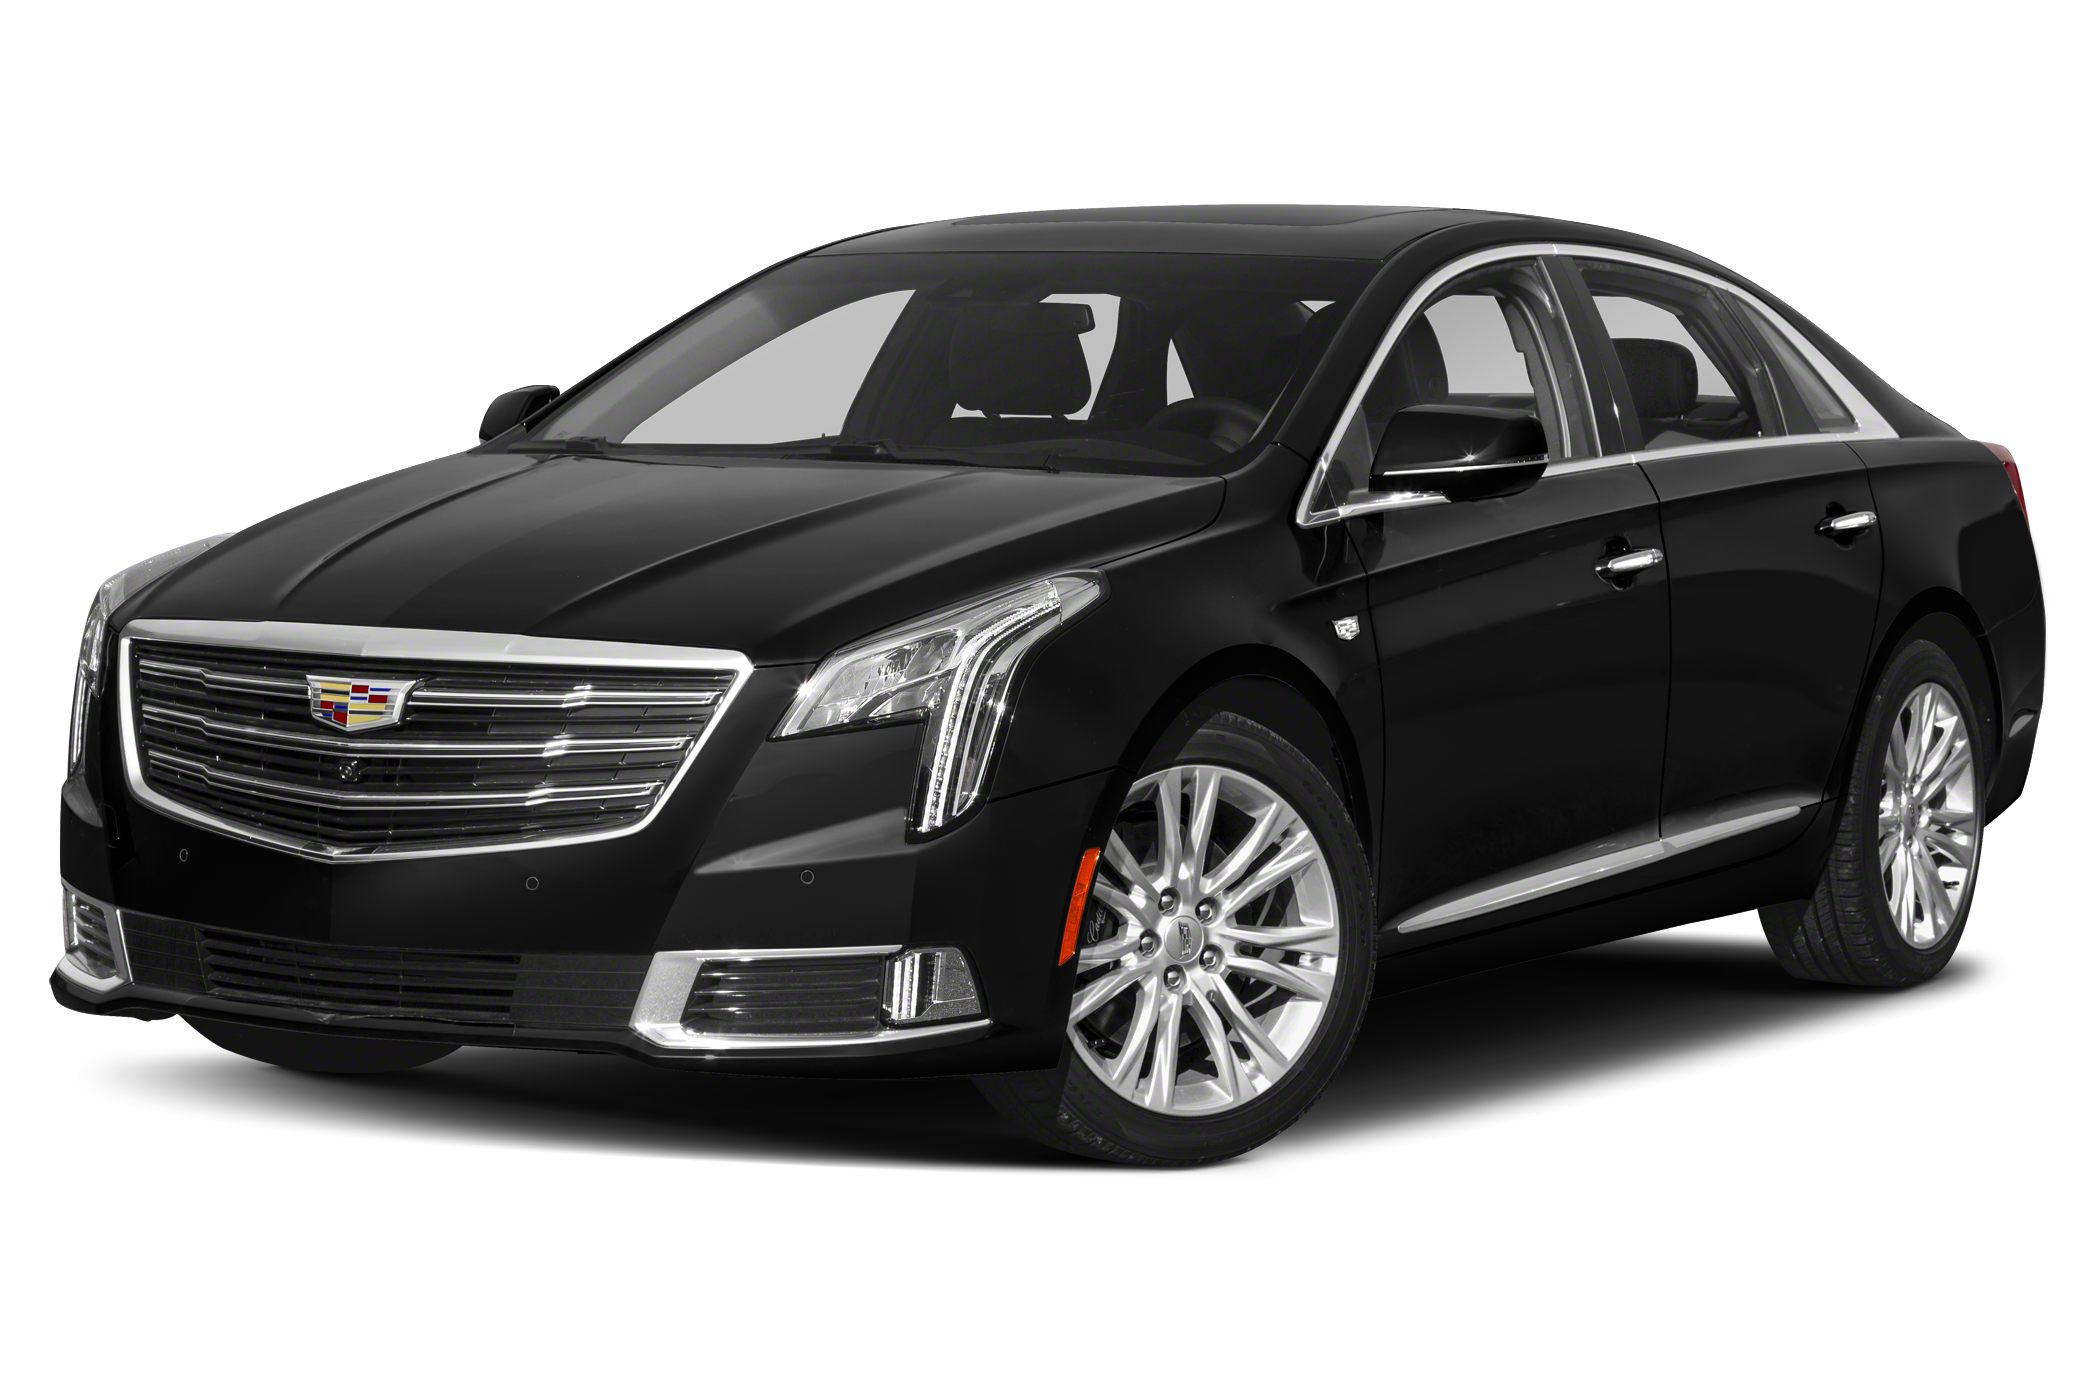 2018 Cadillac XTS Luxury This outstanding Luxury is just waiting to bring the right owner lots of